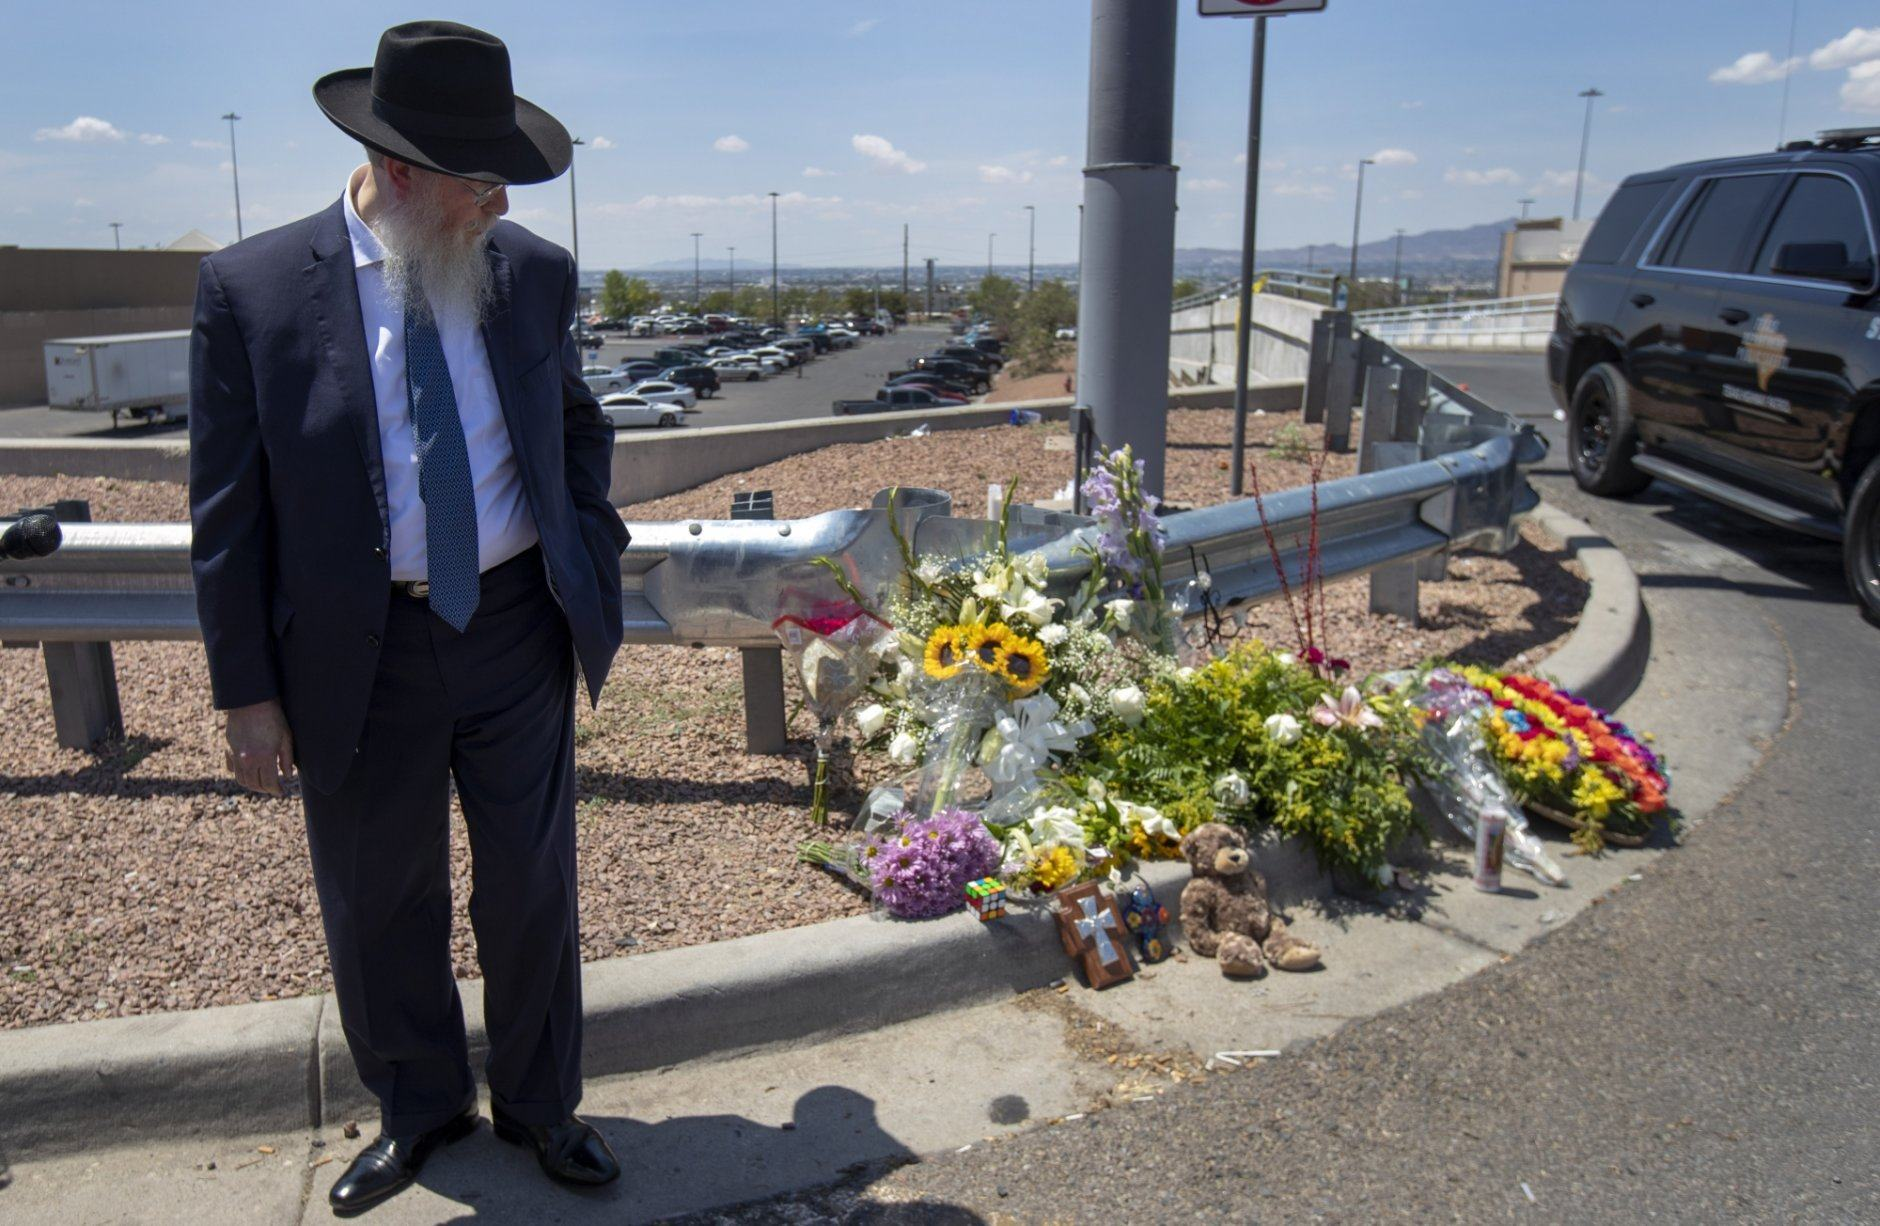 Rabbi Yisrael Greenberg looks at the makeshift memorial while paying tribute to the victims of the Saturday mass shooting at a shopping complex in El Paso, Texas, Sunday, August 4, 2019. (AP Photo/Andres Leighton)